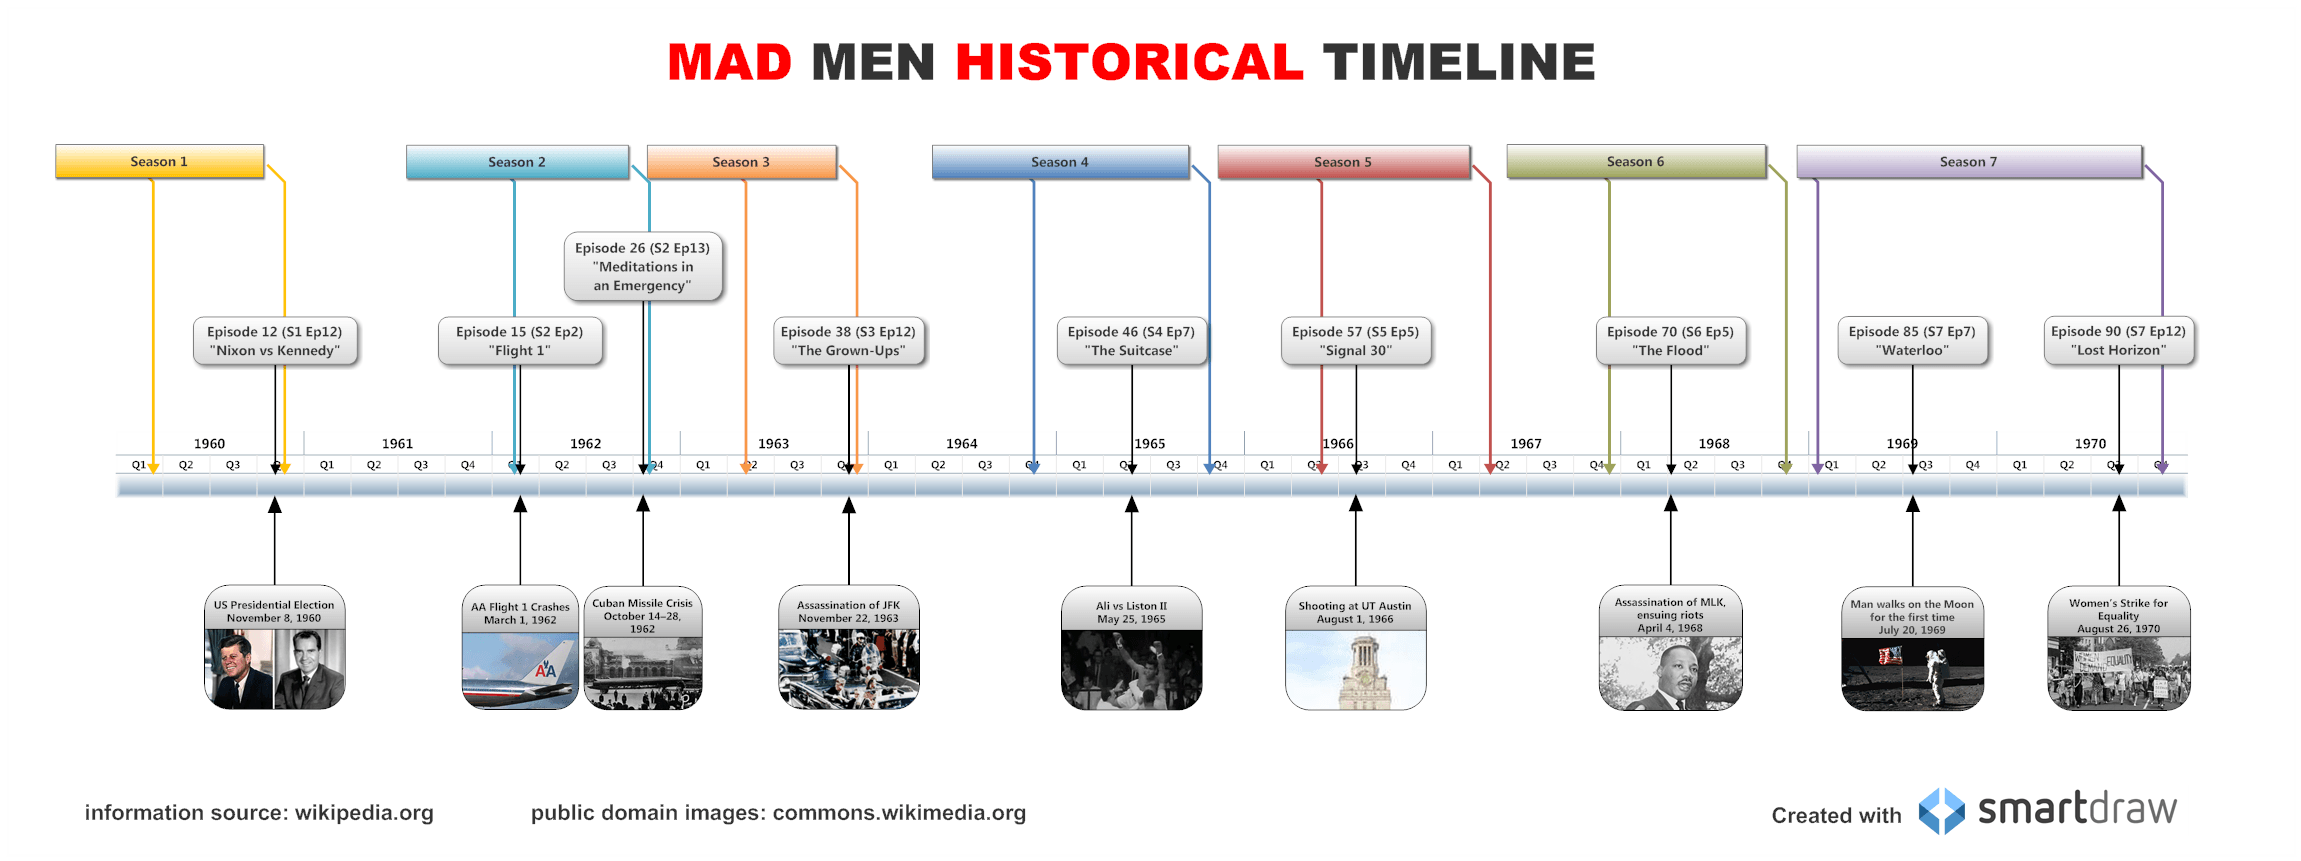 mad men timeline - Smartdraw Vs